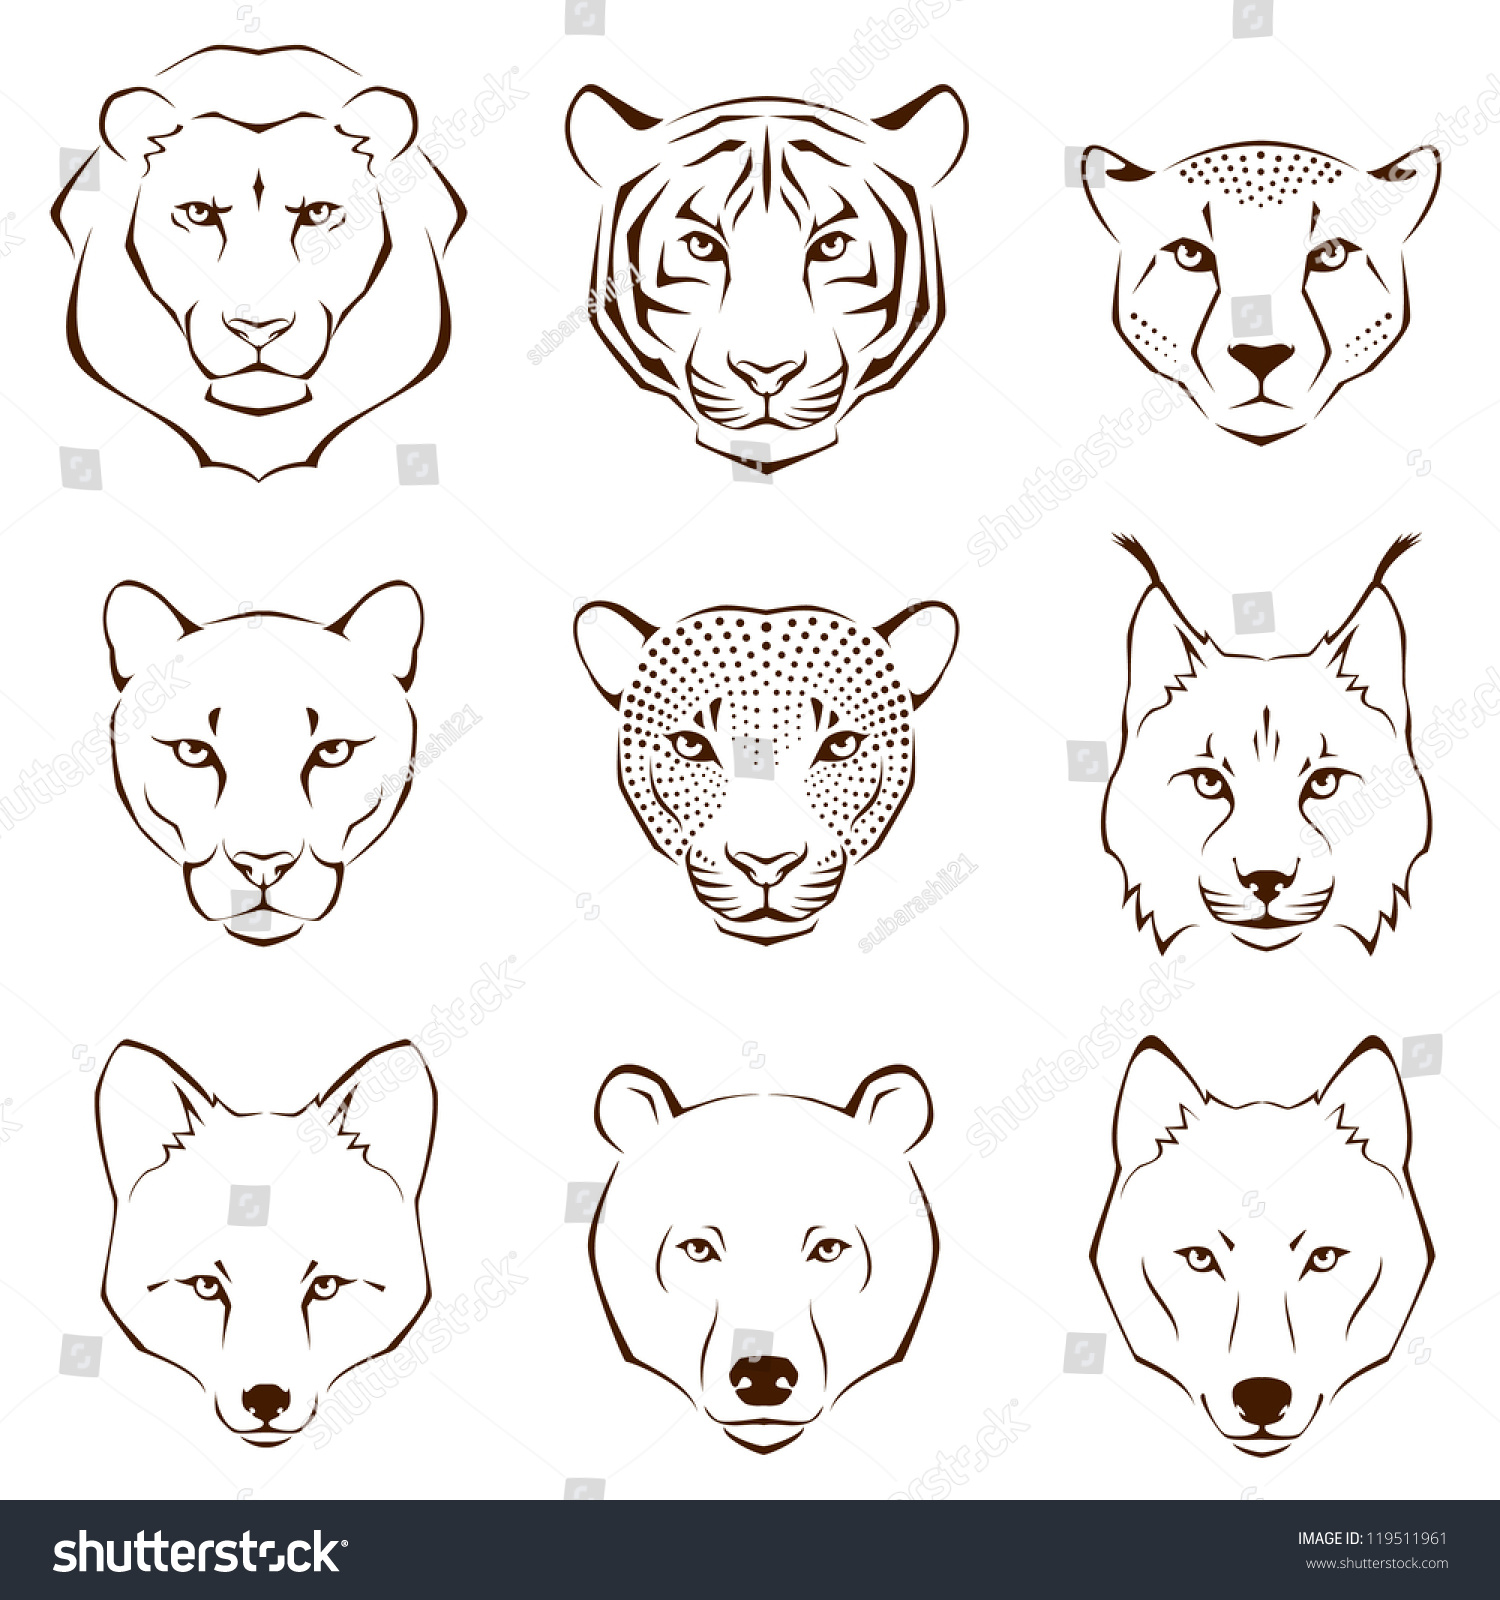 Line Drawing Of Animals : Set simple line illustrations showing different stock